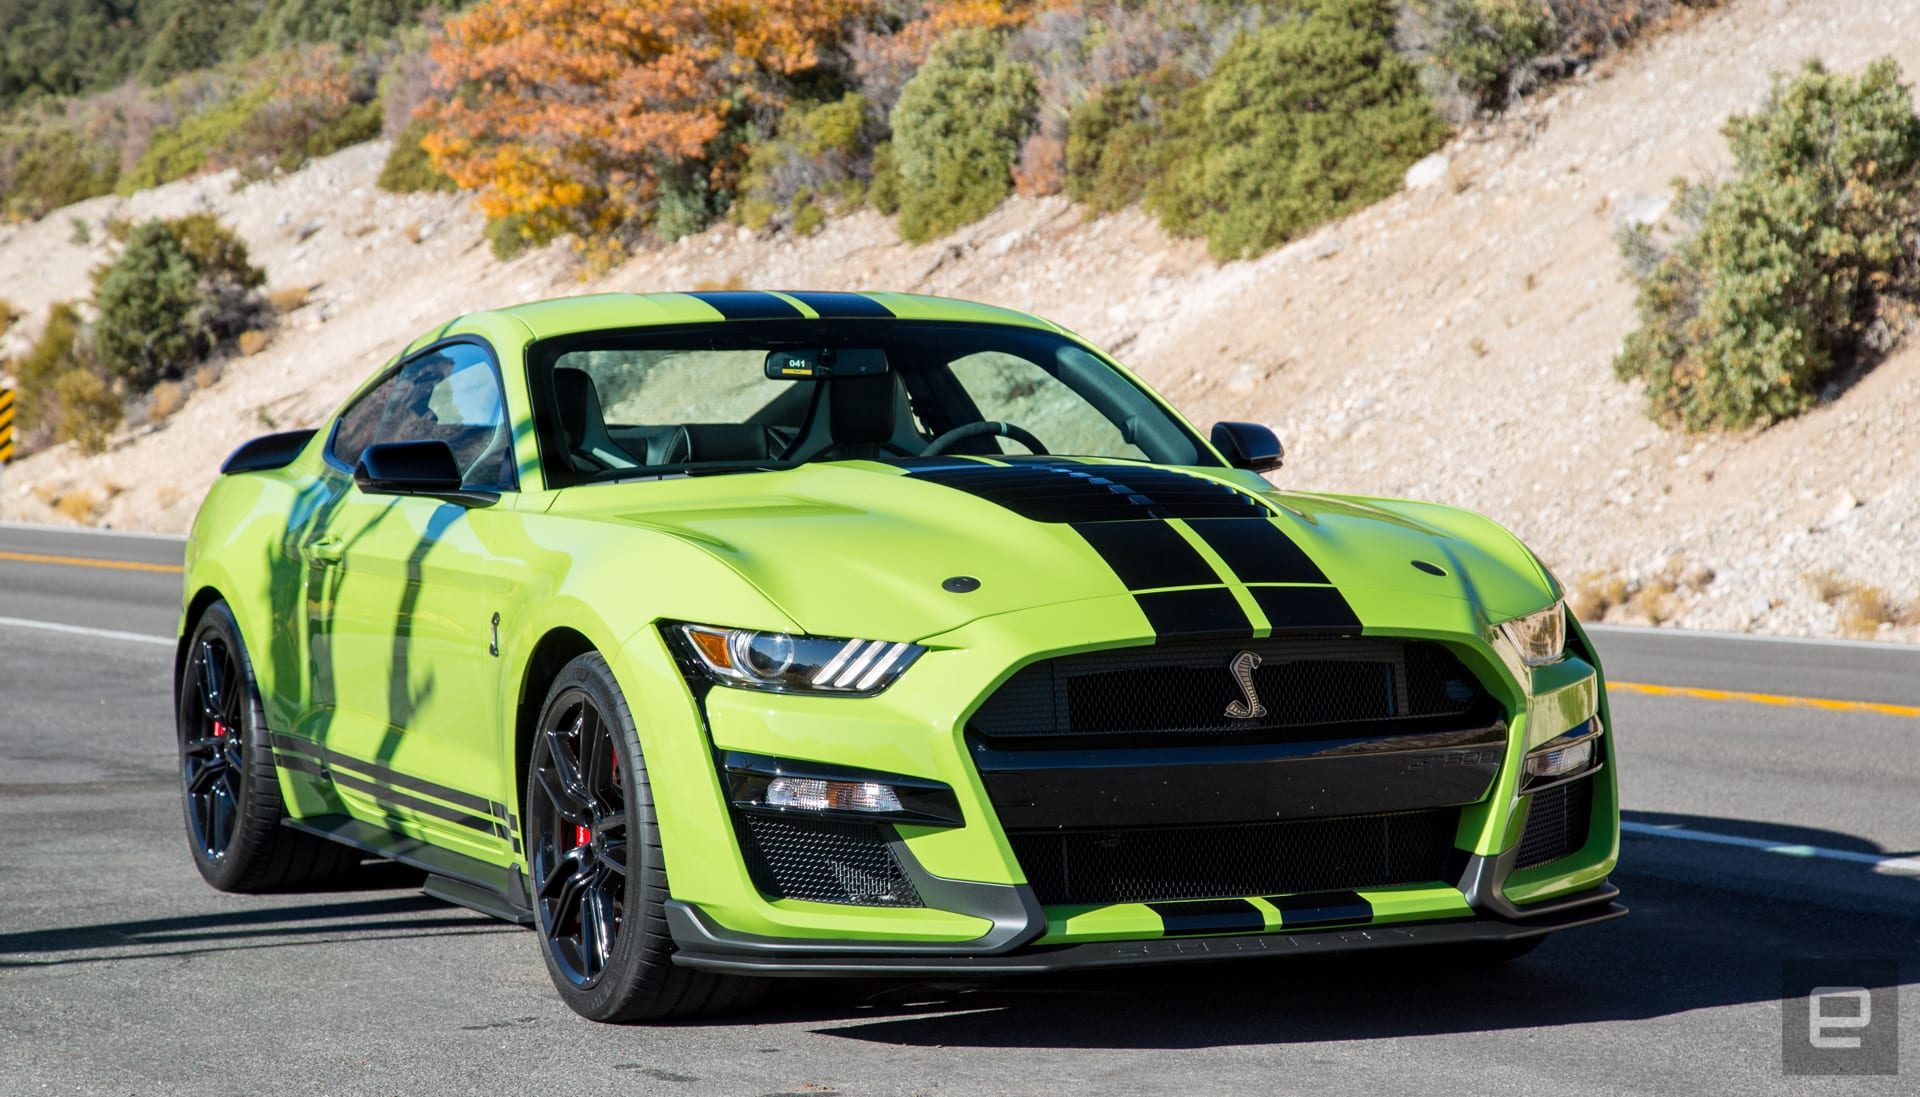 Ford Mustang Shelby GT500: Great on the track, good enough ...